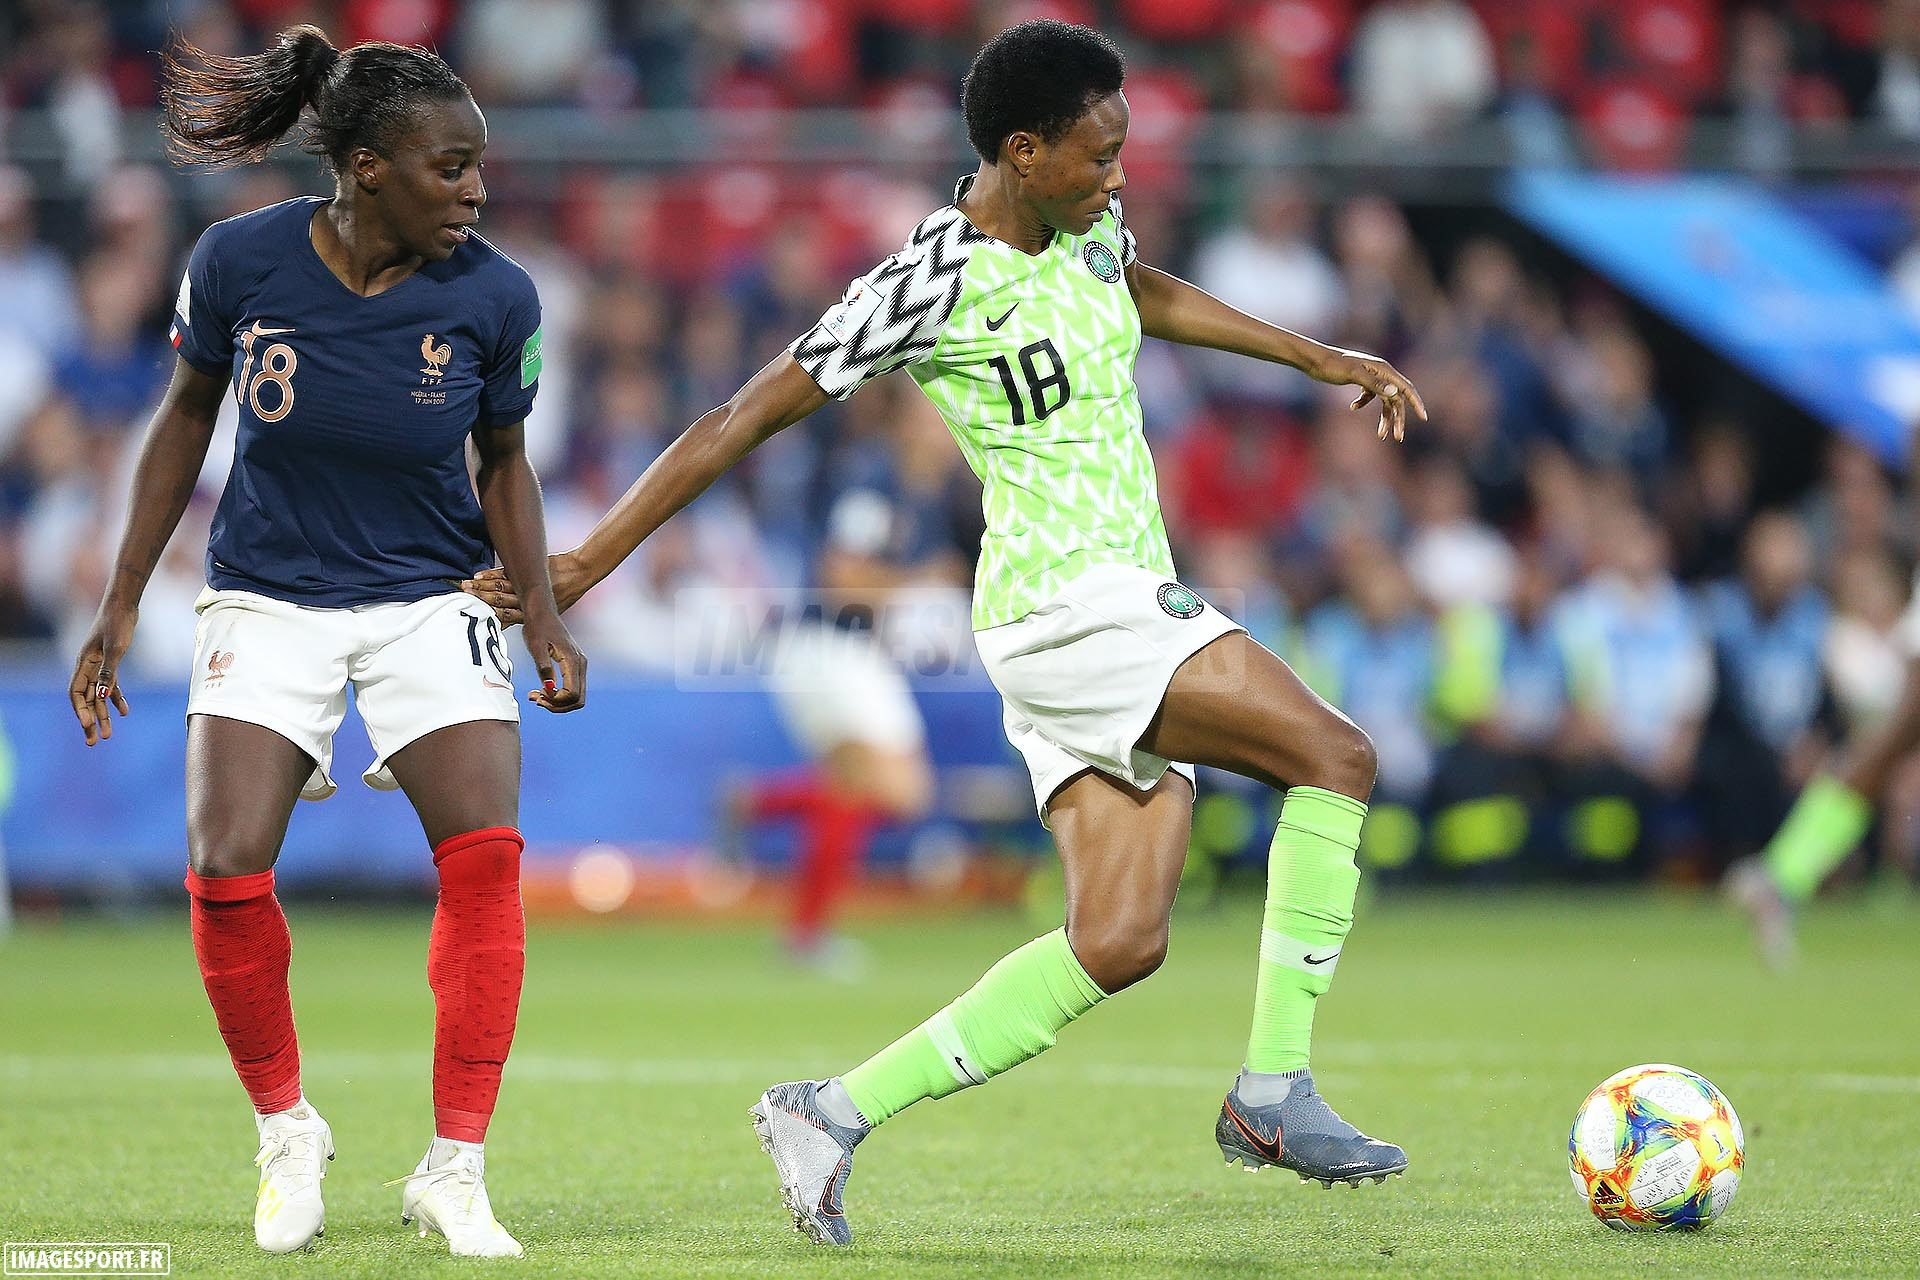 coupe-du-monde-19-nigeria-france_13